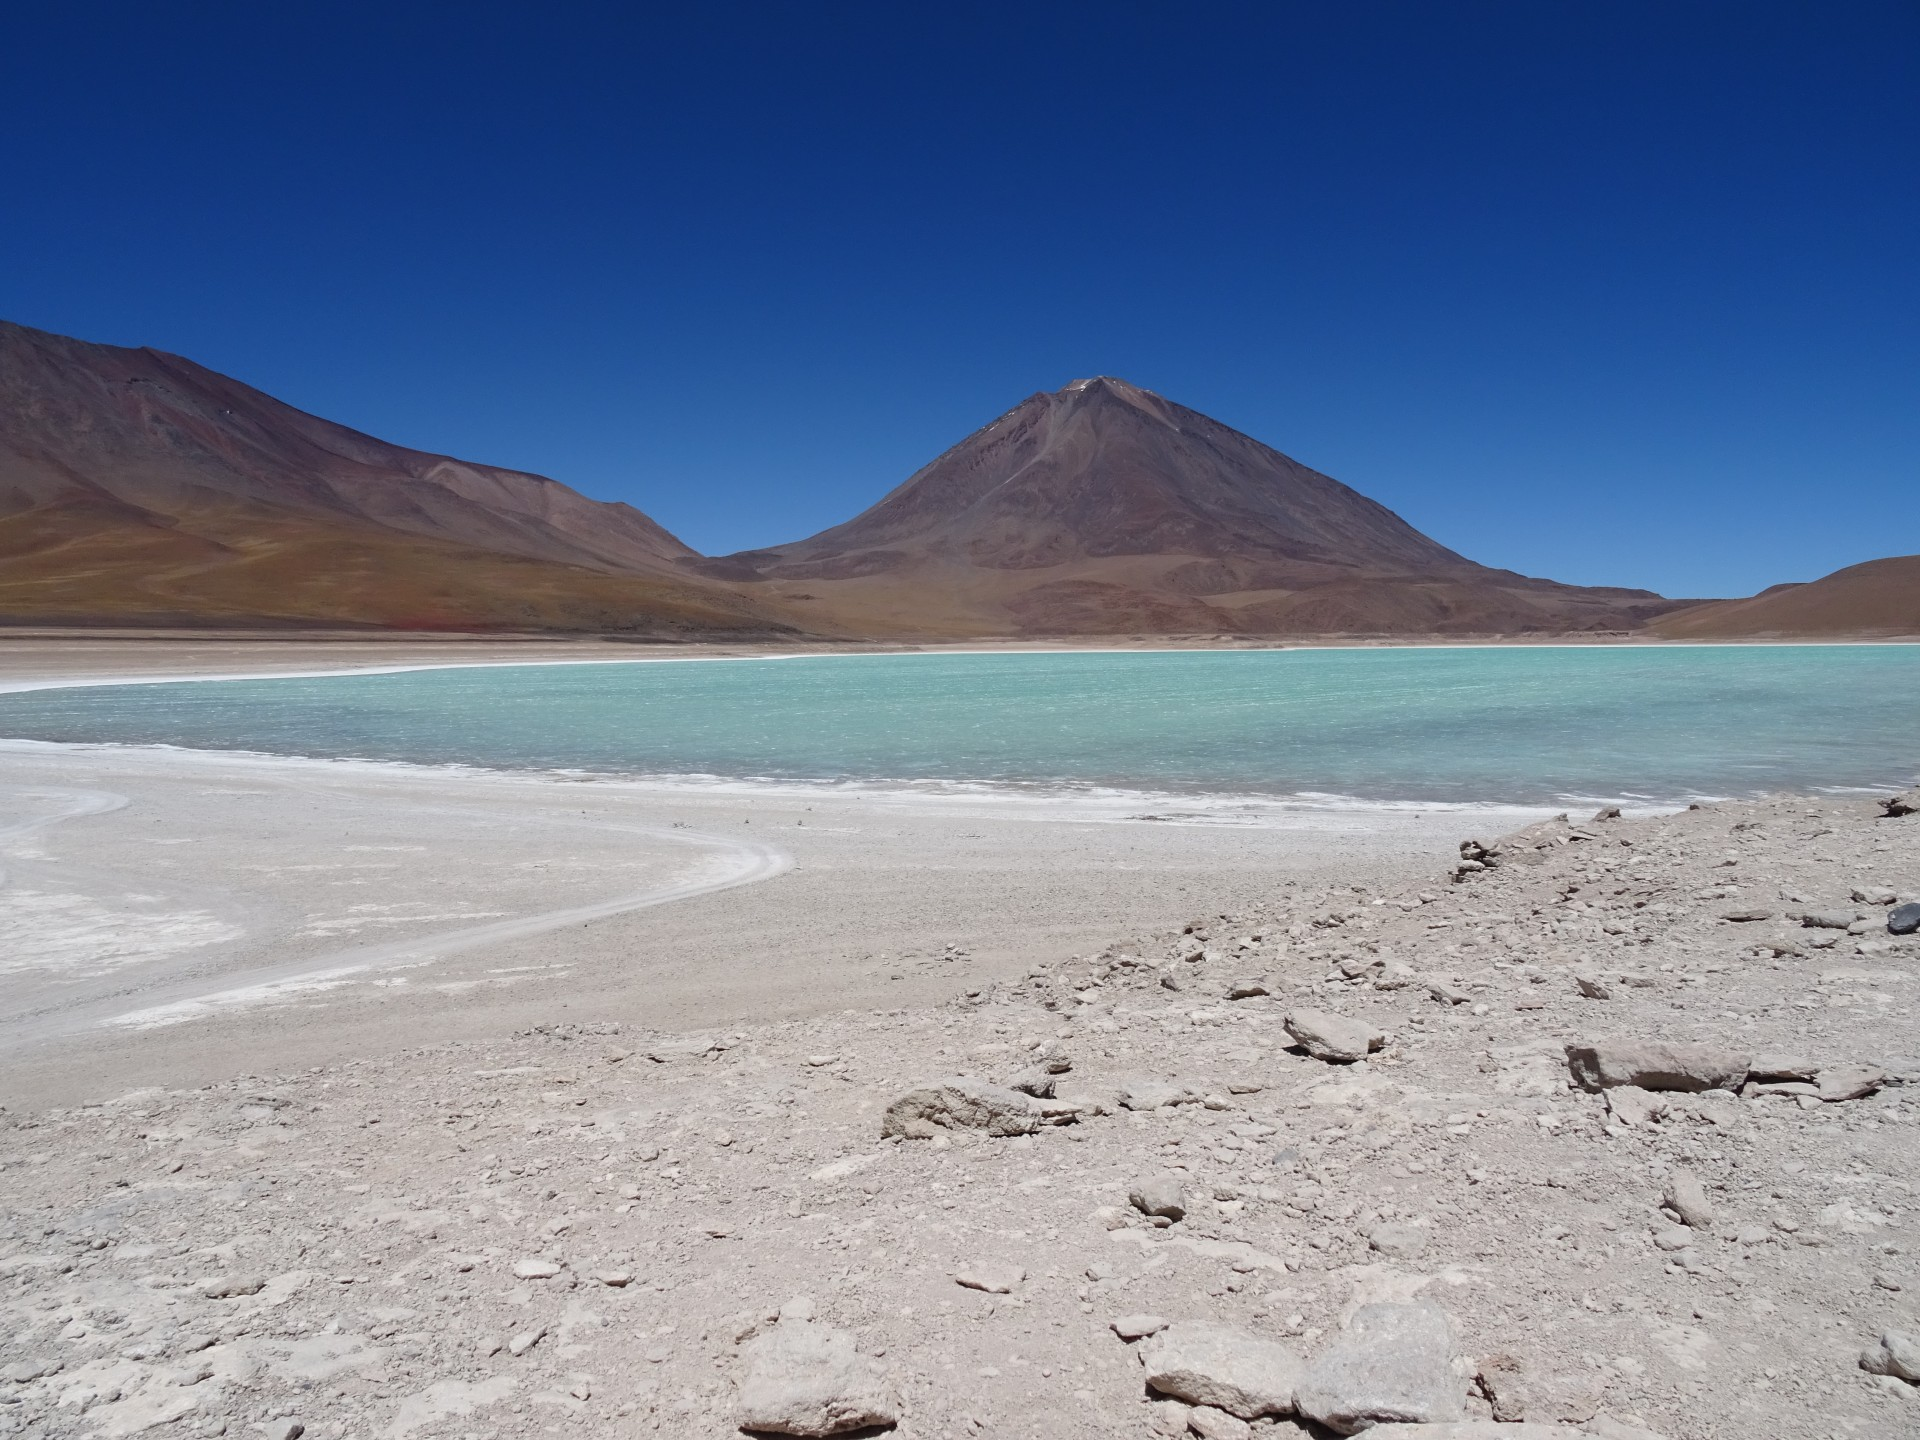 Laguna Verde. Miguel and Esteban not in sight.